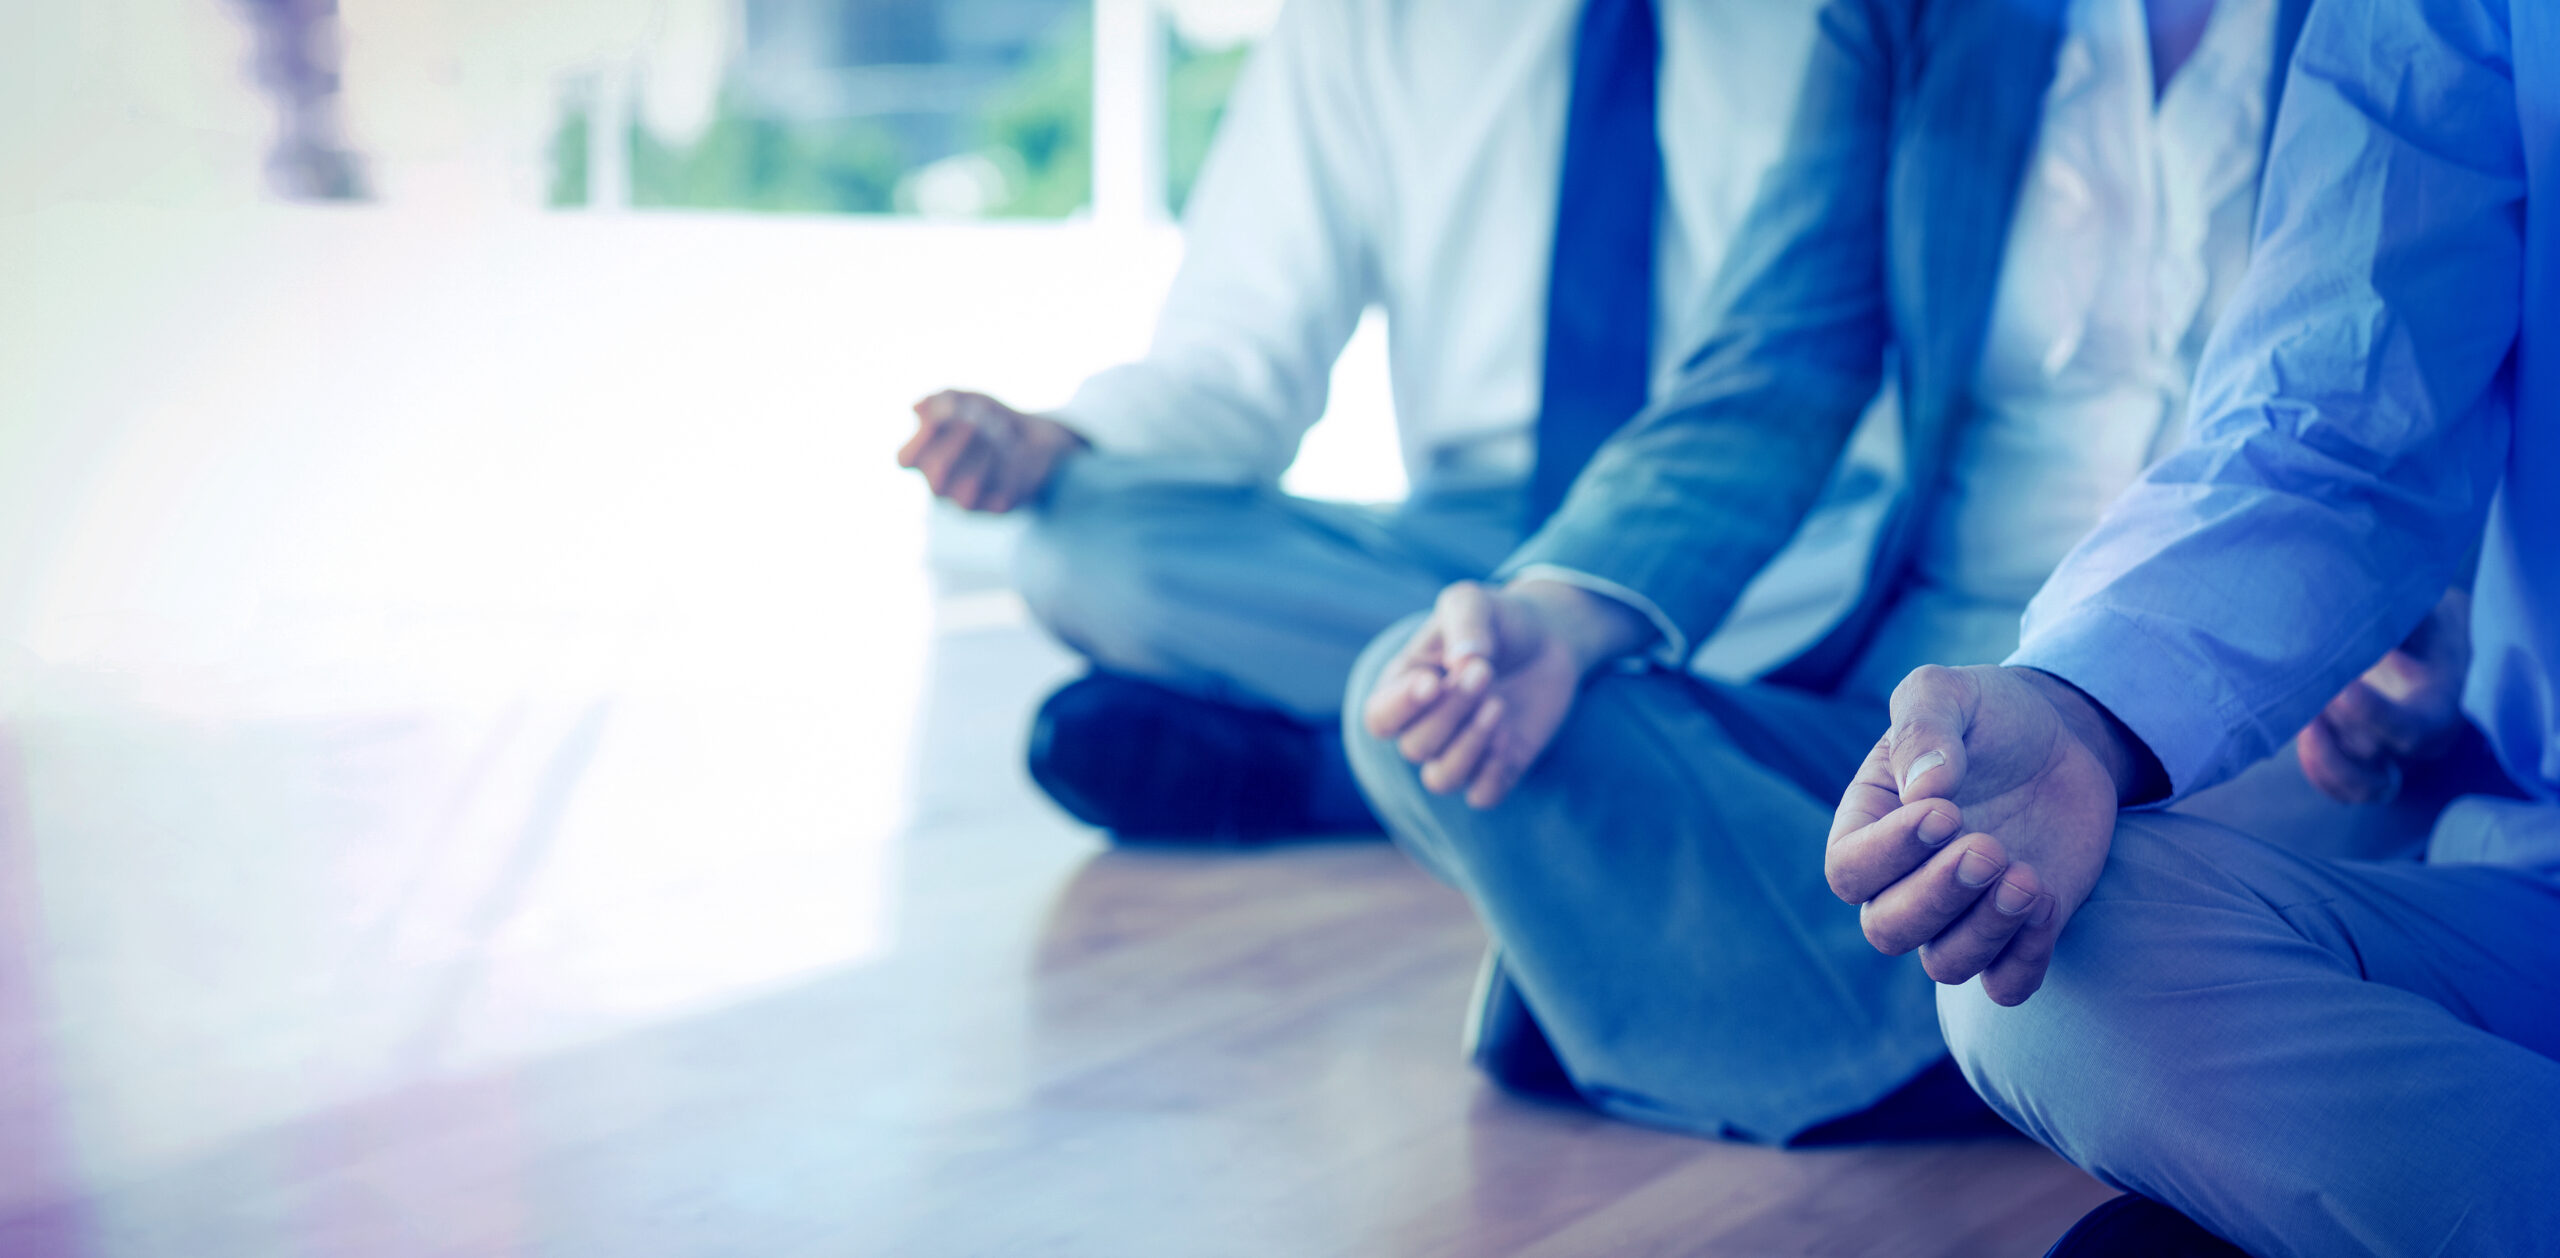 7 Well-Being Practices to Weave Into Your Virtual Training